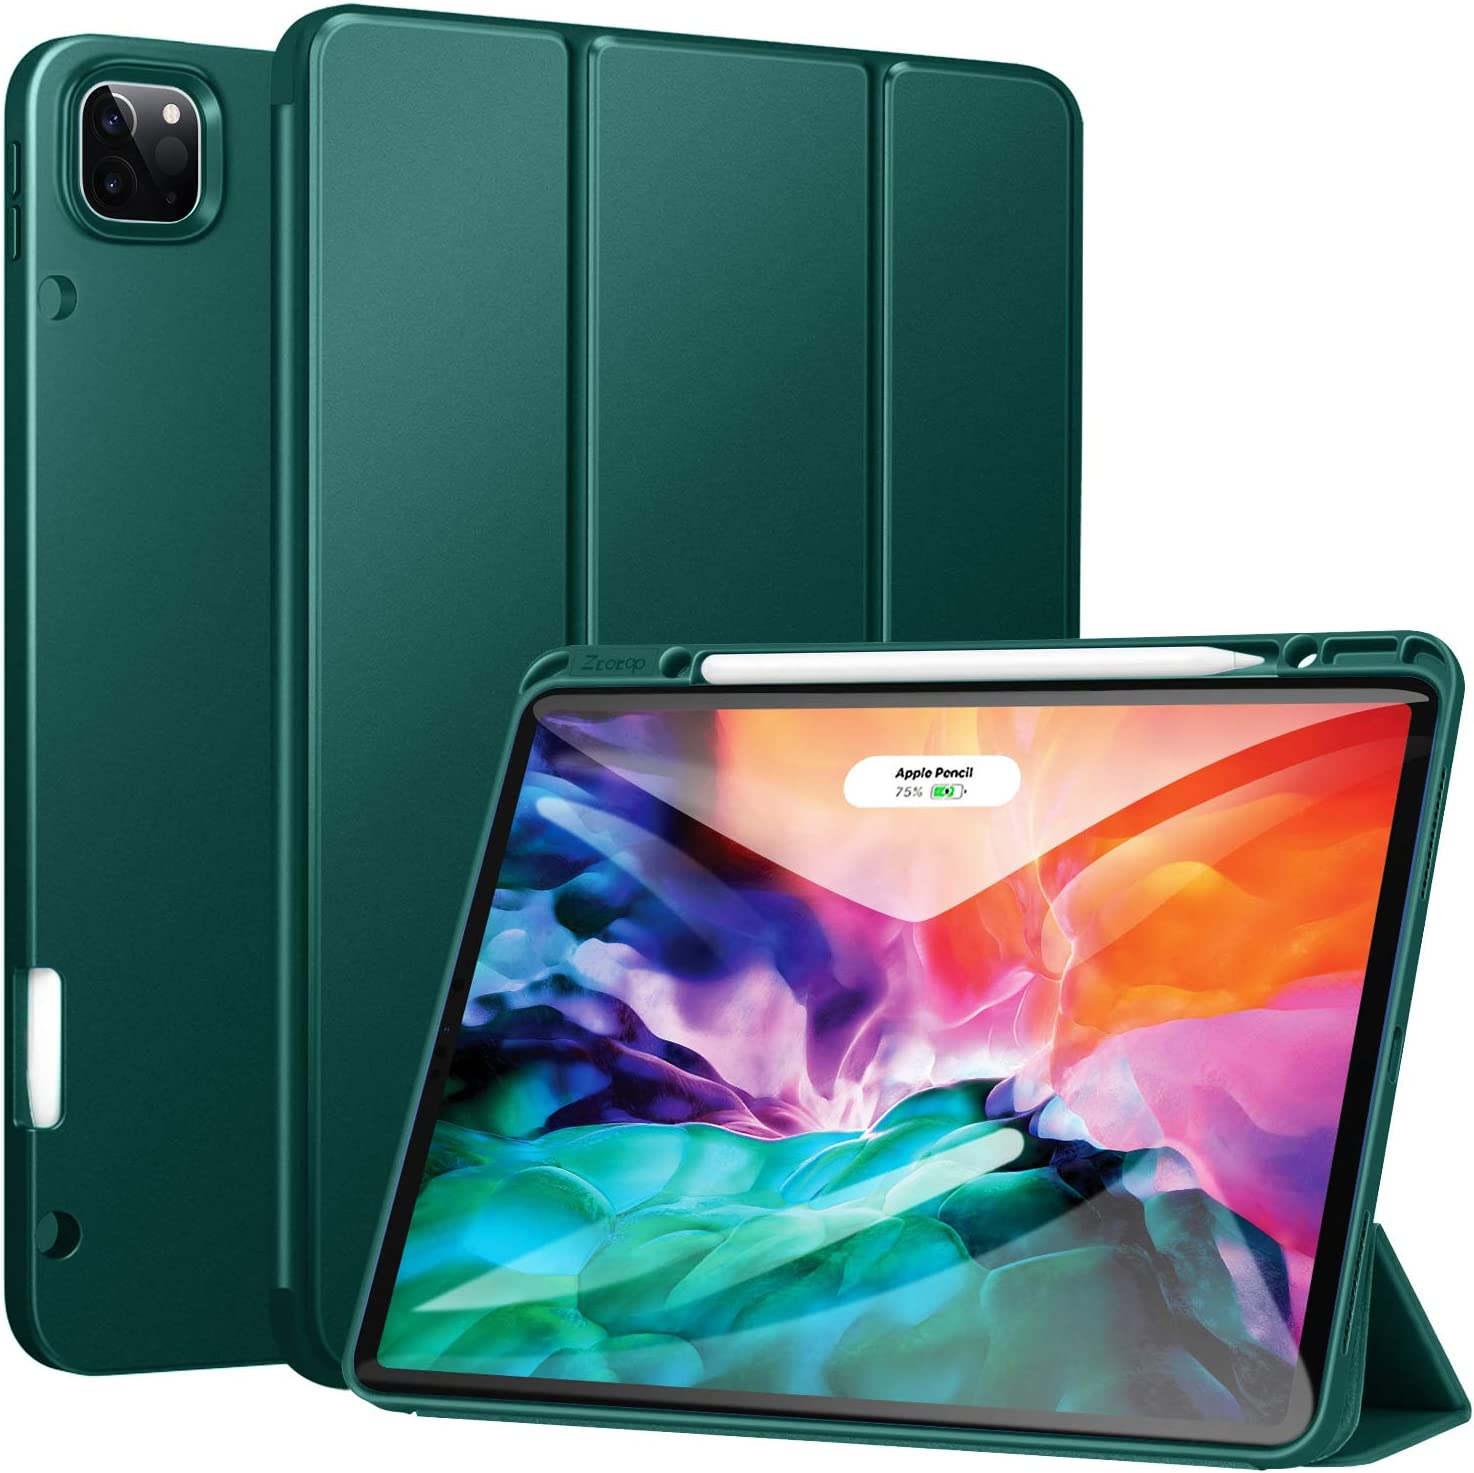 Ztotop Case for New iPad Pro 12.9 Inch 4th & 3rd Generation 2020/2018 with Pencil Holder, Full Body Protective Rugged Shockproof Cover with Auto Sleep/Wake, Support 2nd Gen Pencil Charging, Ink Green